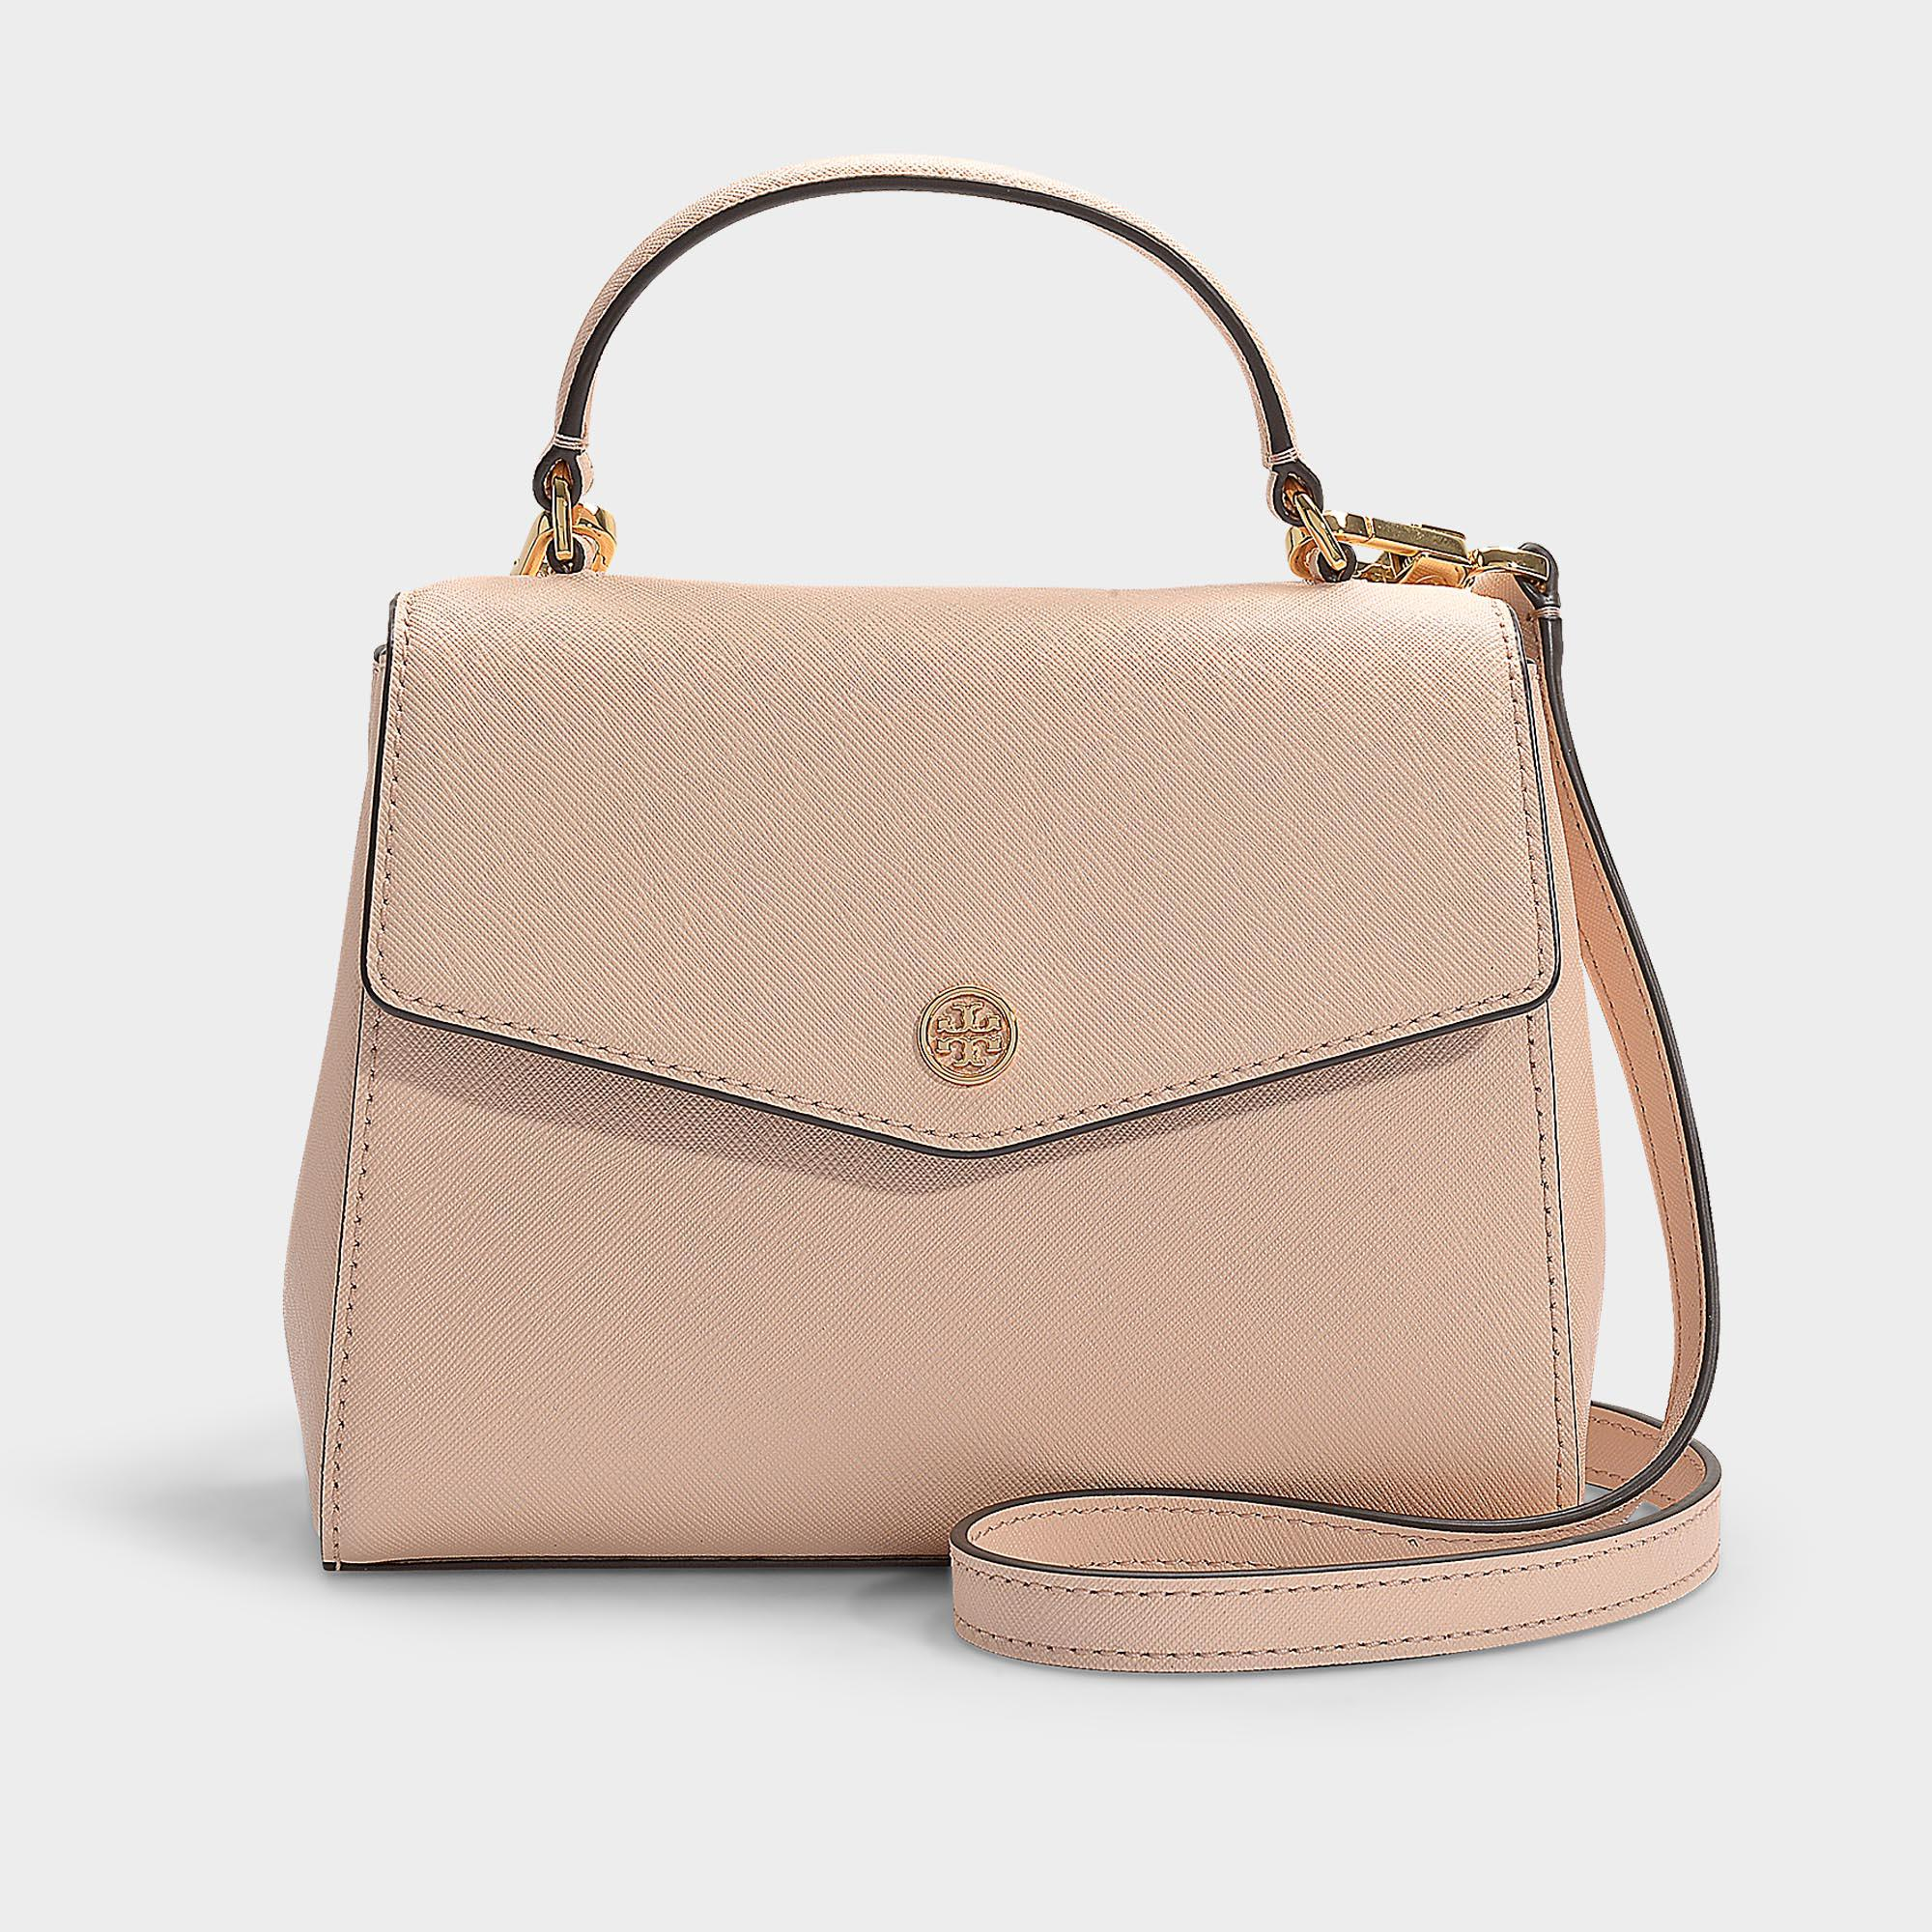 63416d4a5dd0 Lyst - Tory Burch Robinson Small Top-handle Satchel In Pale Apricot ...